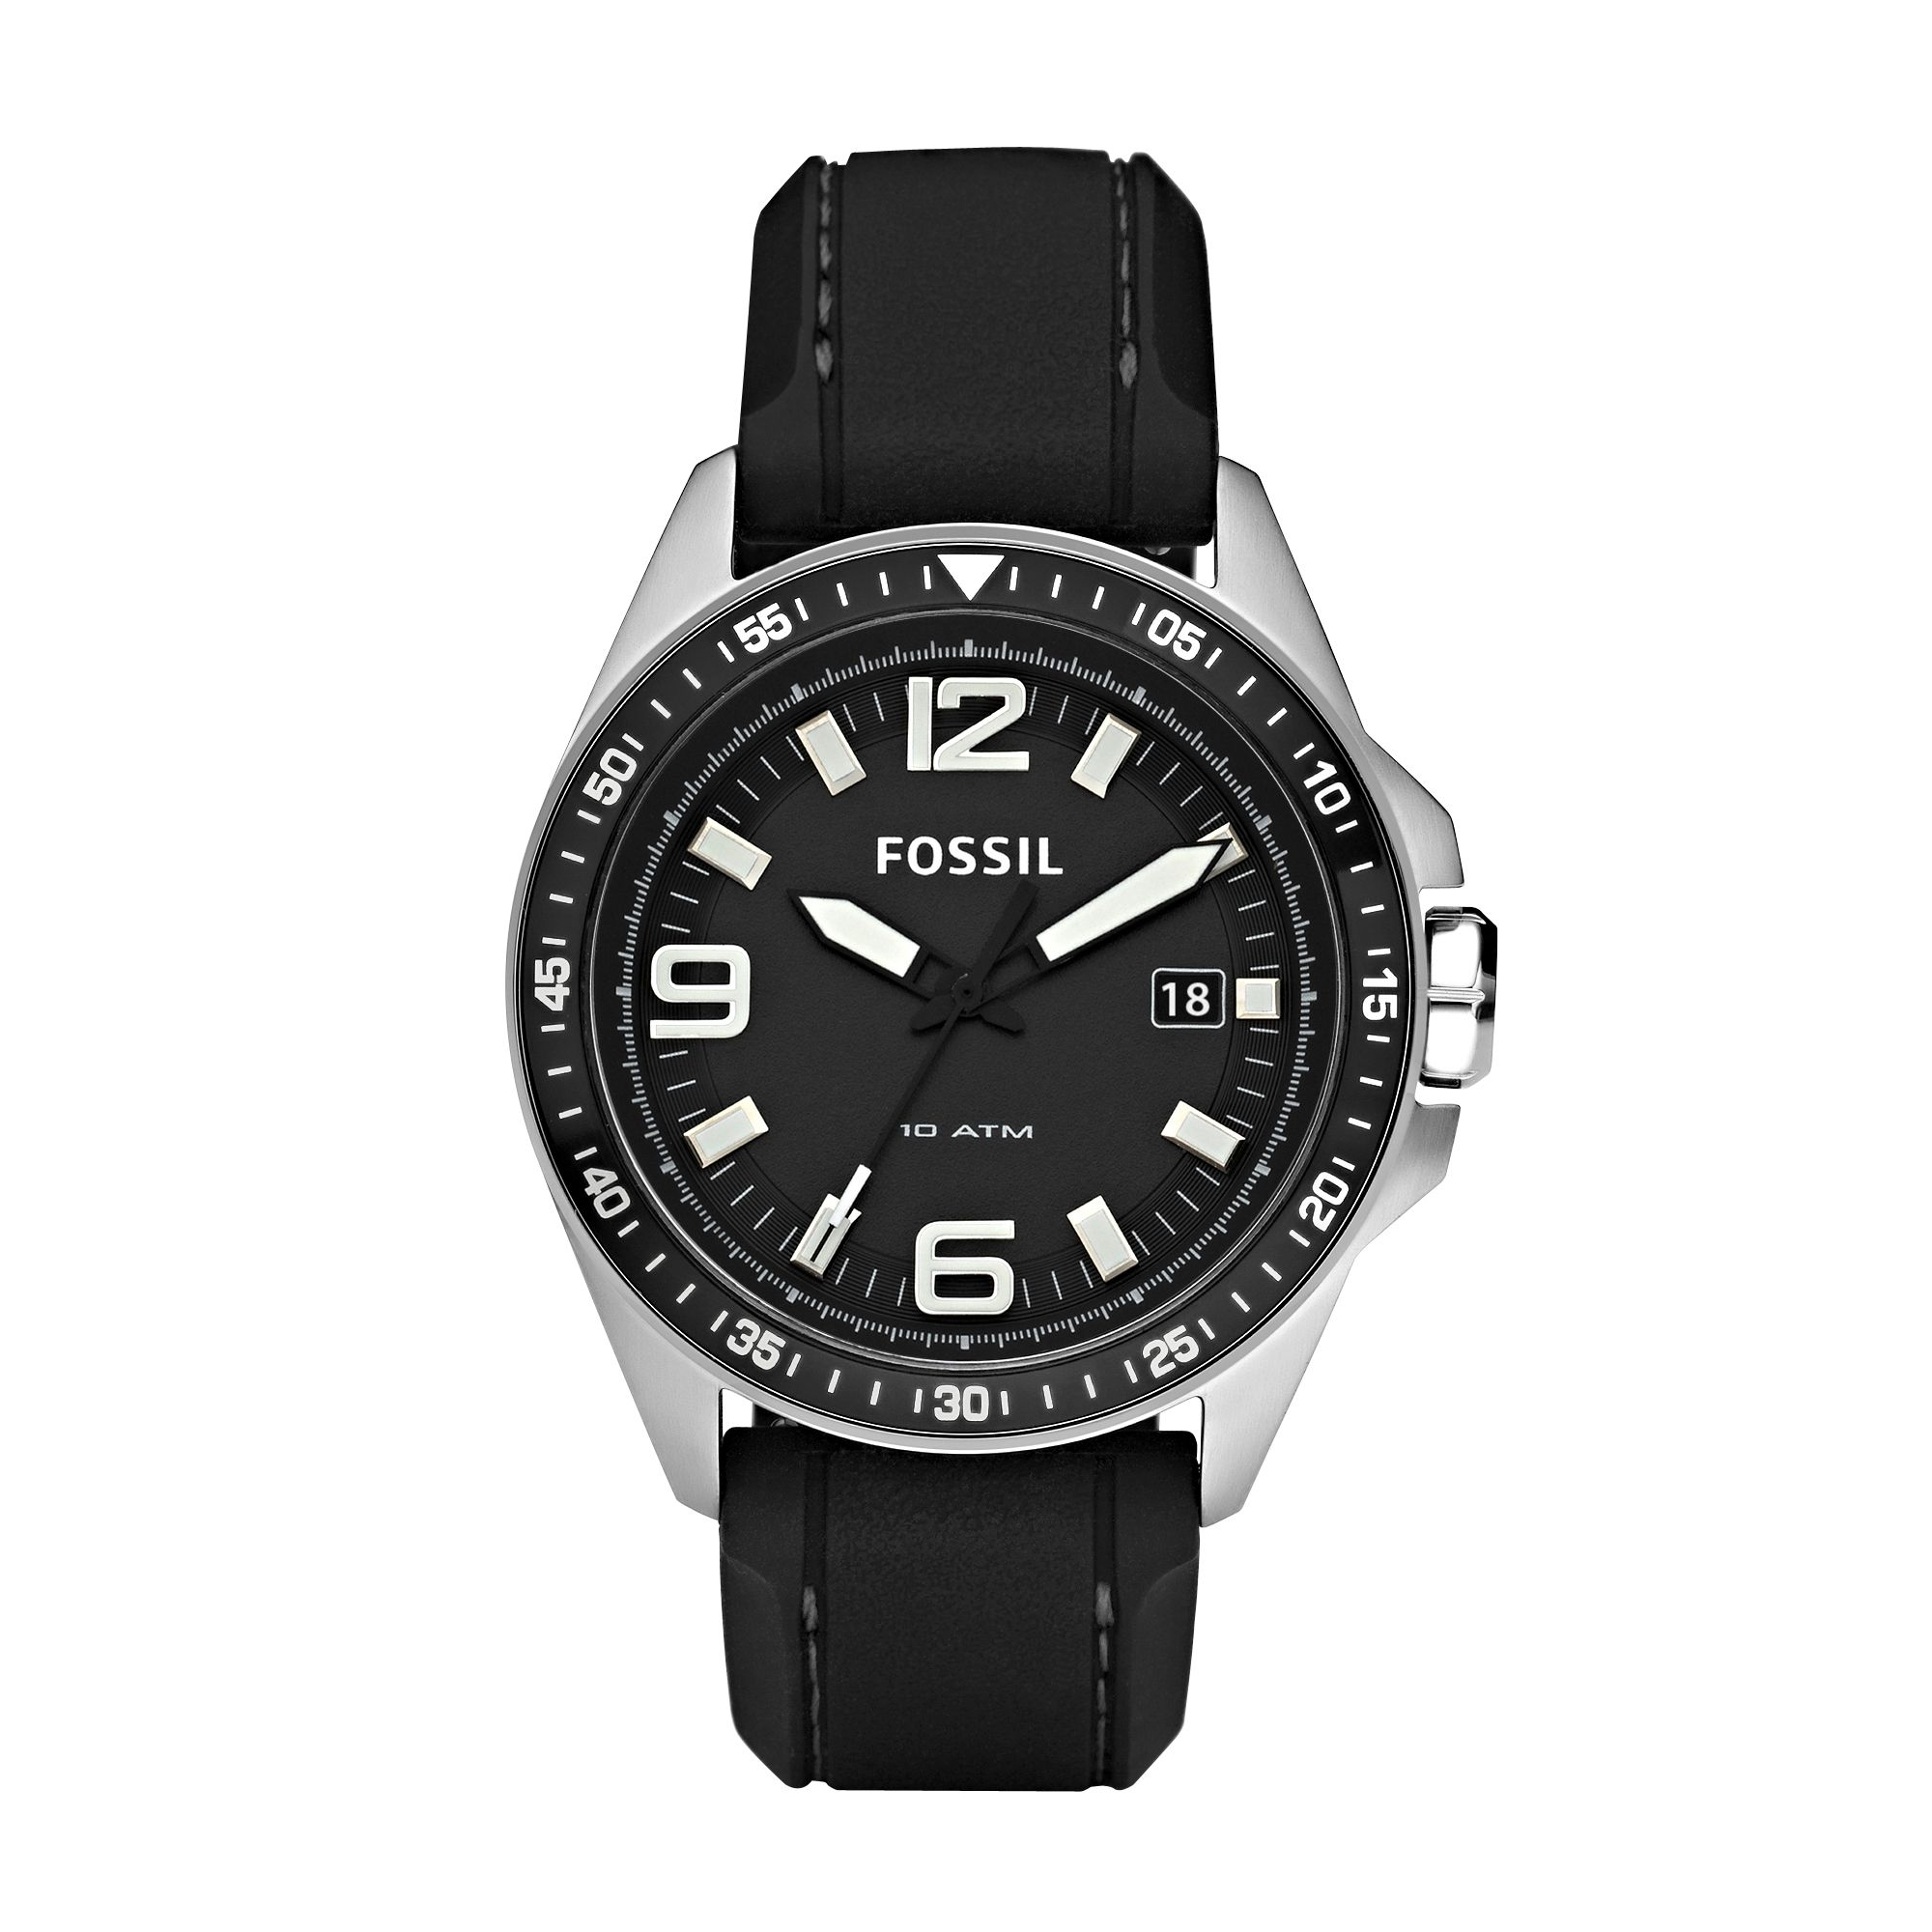 Fossil Gents sports watch product image